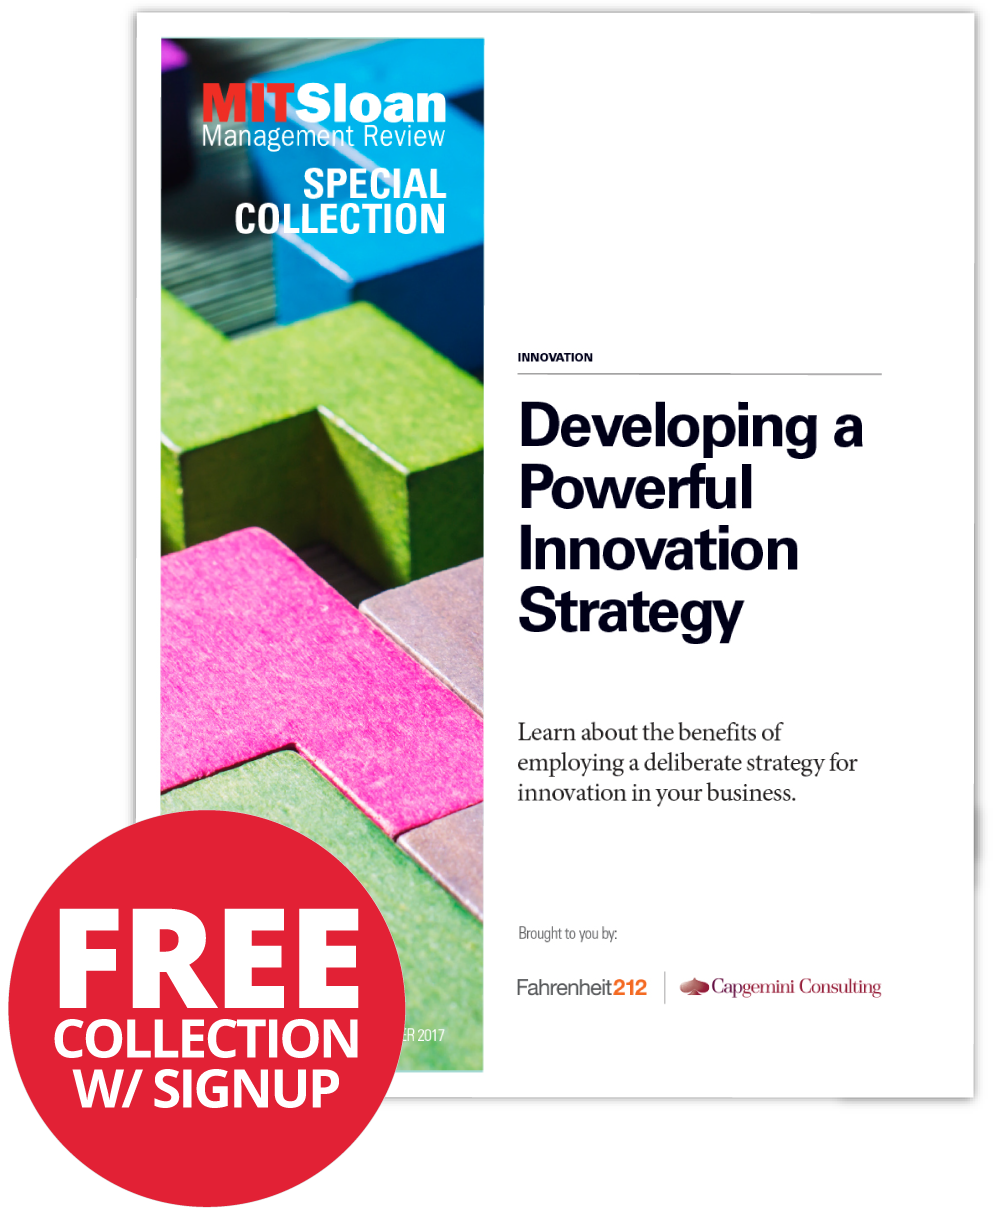 Innovation Strategy Collection